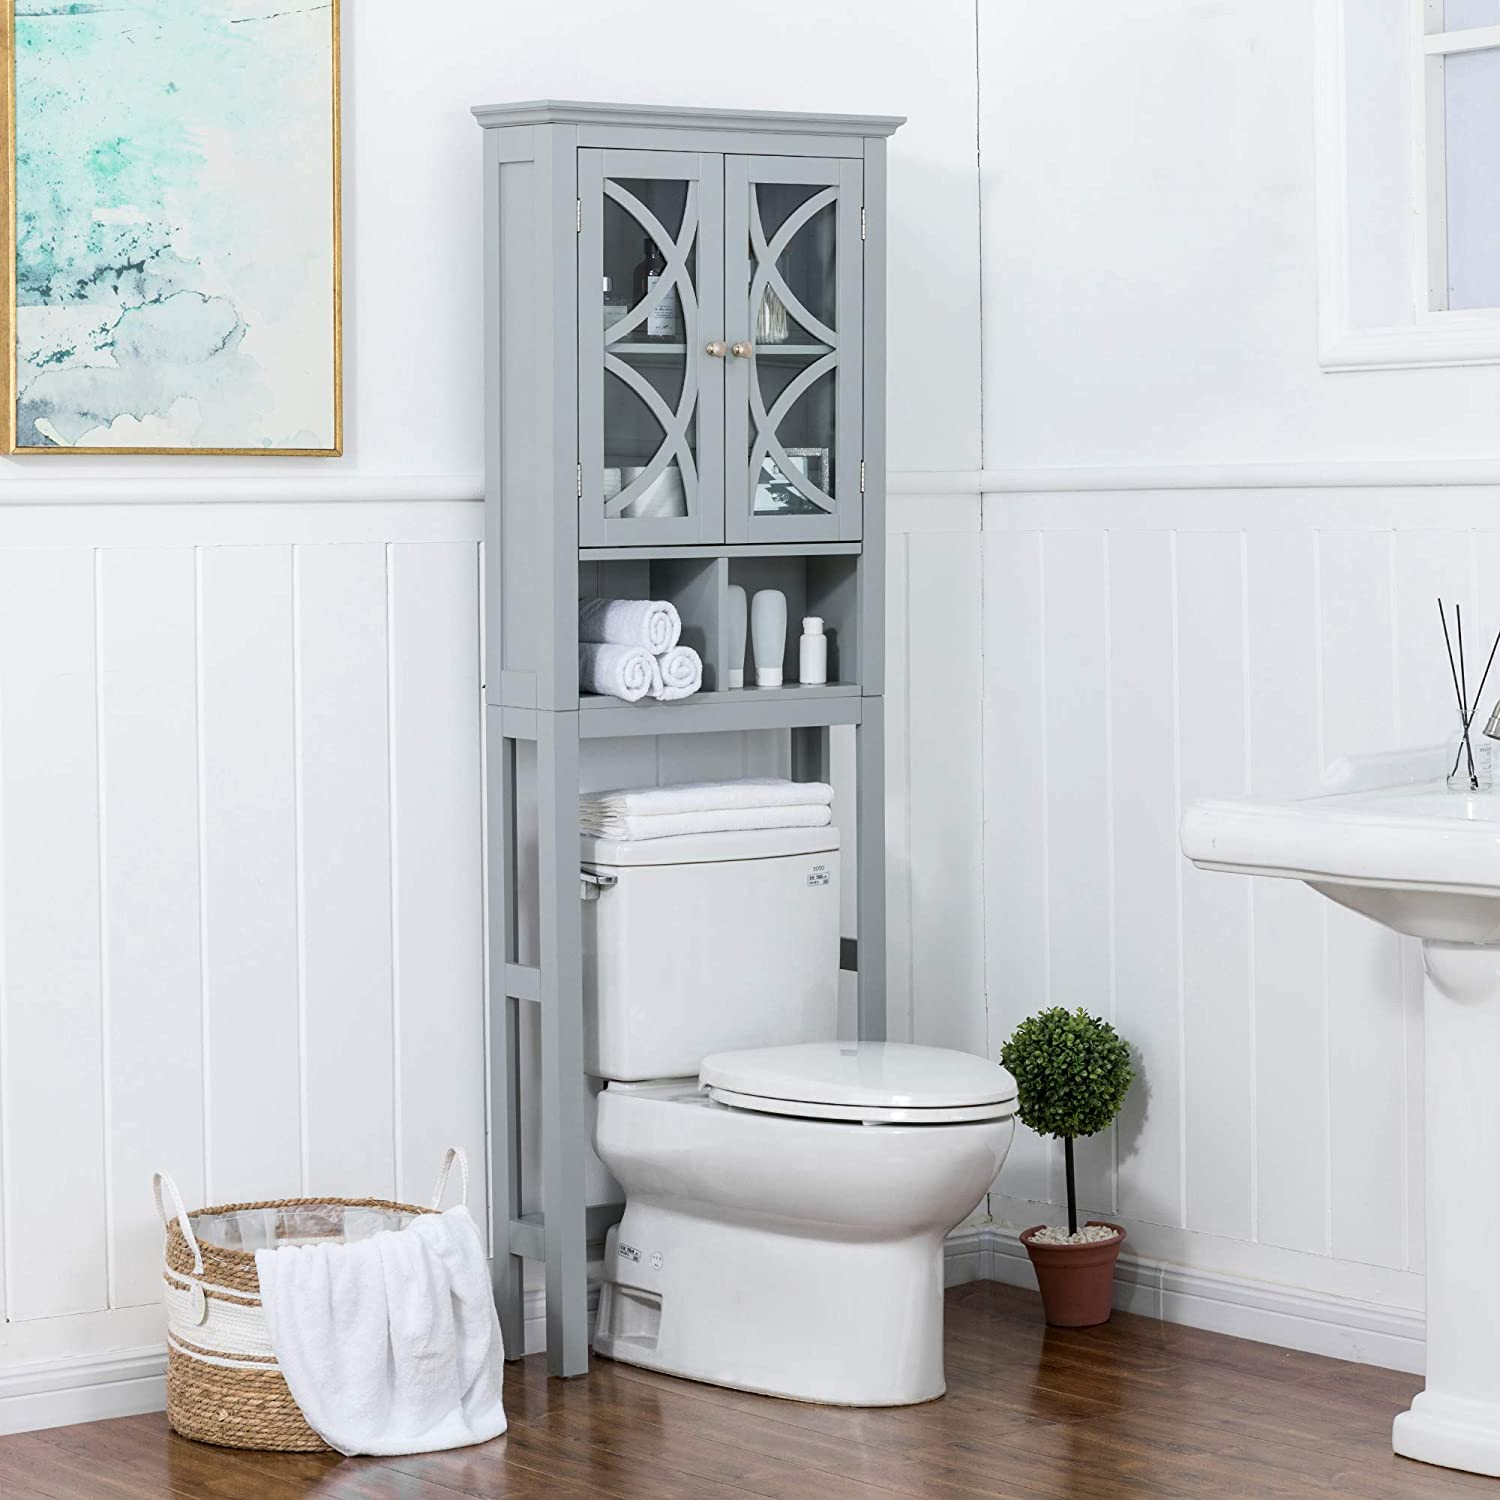 Glitzhome Bathroom Over-The-Toilet Space Saver Storage with Shelf and 2-Door Cabinet, 68